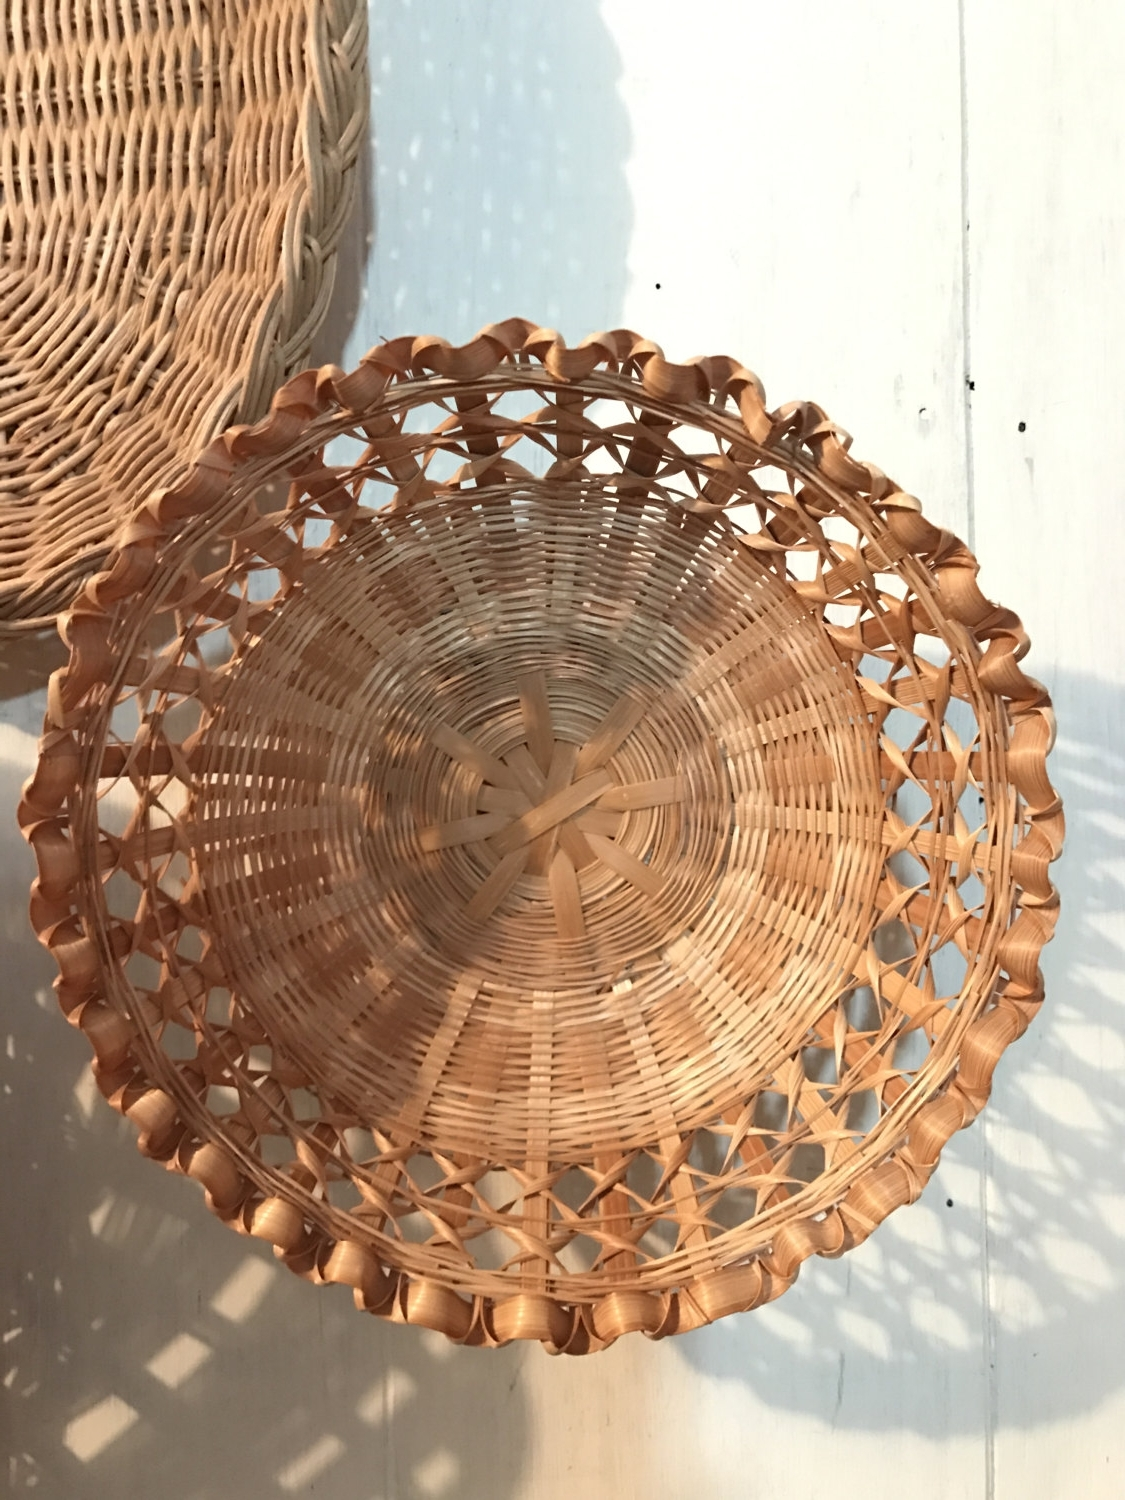 Wicker Rattan Wall Art Inside Recent Bright And Modern Rattan Wall Decor With Vintage Round Basket (View 15 of 15)